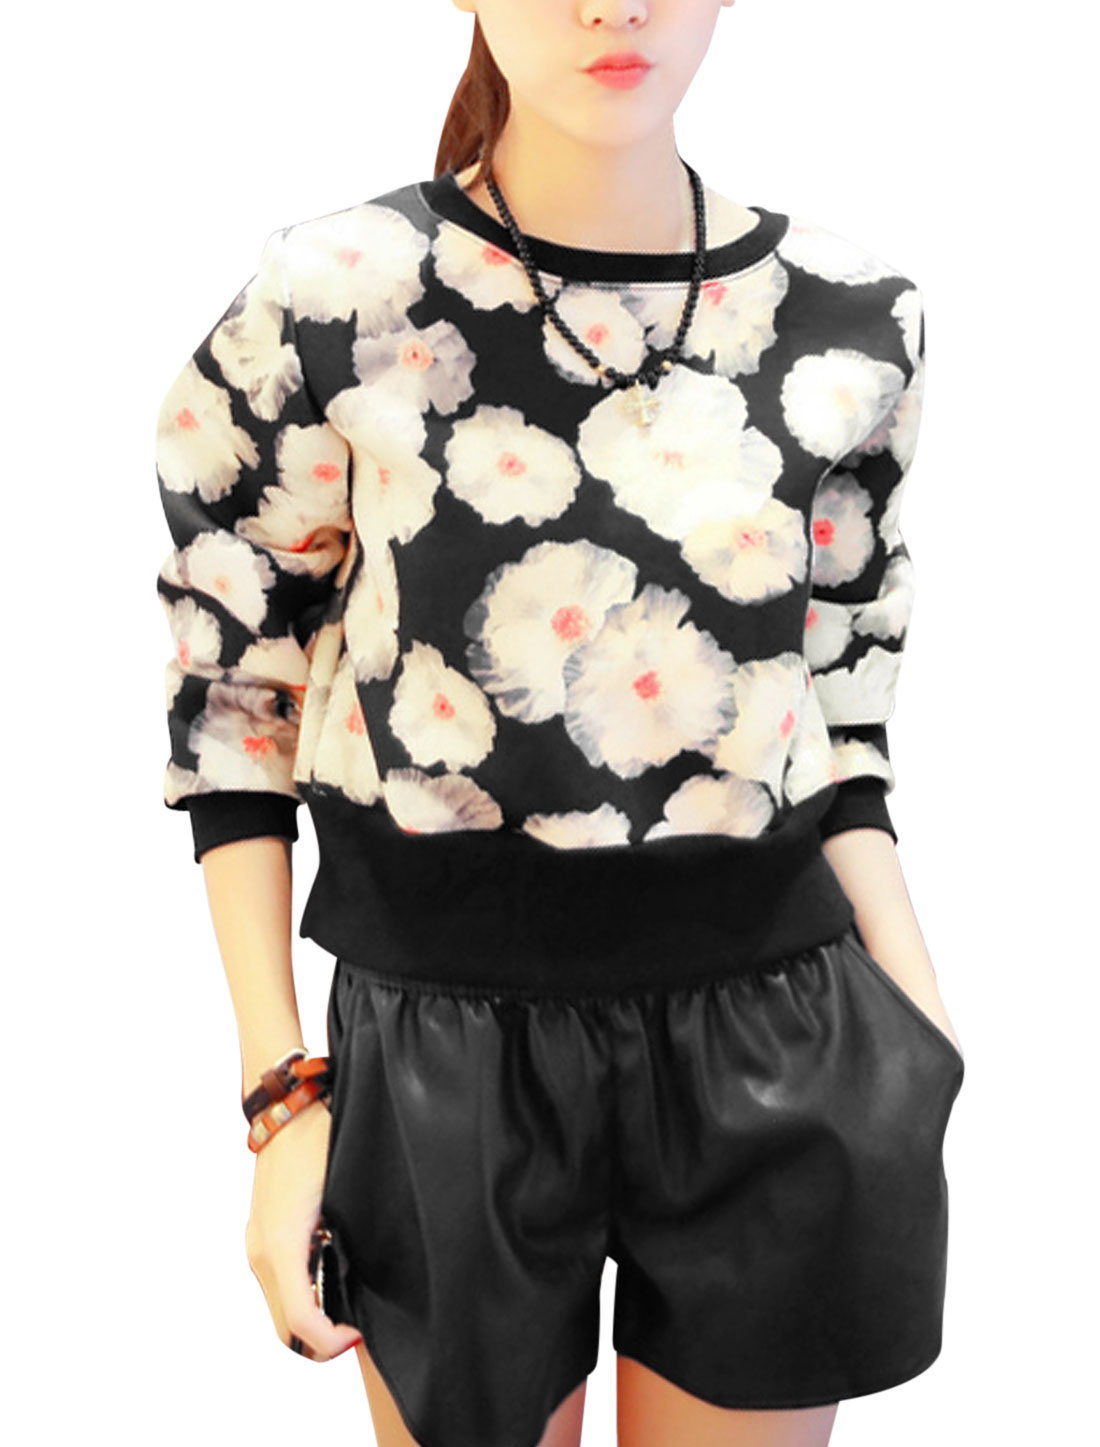 Lady Slipover Floral Pattern Long Sleeve Leisure Top Black XS